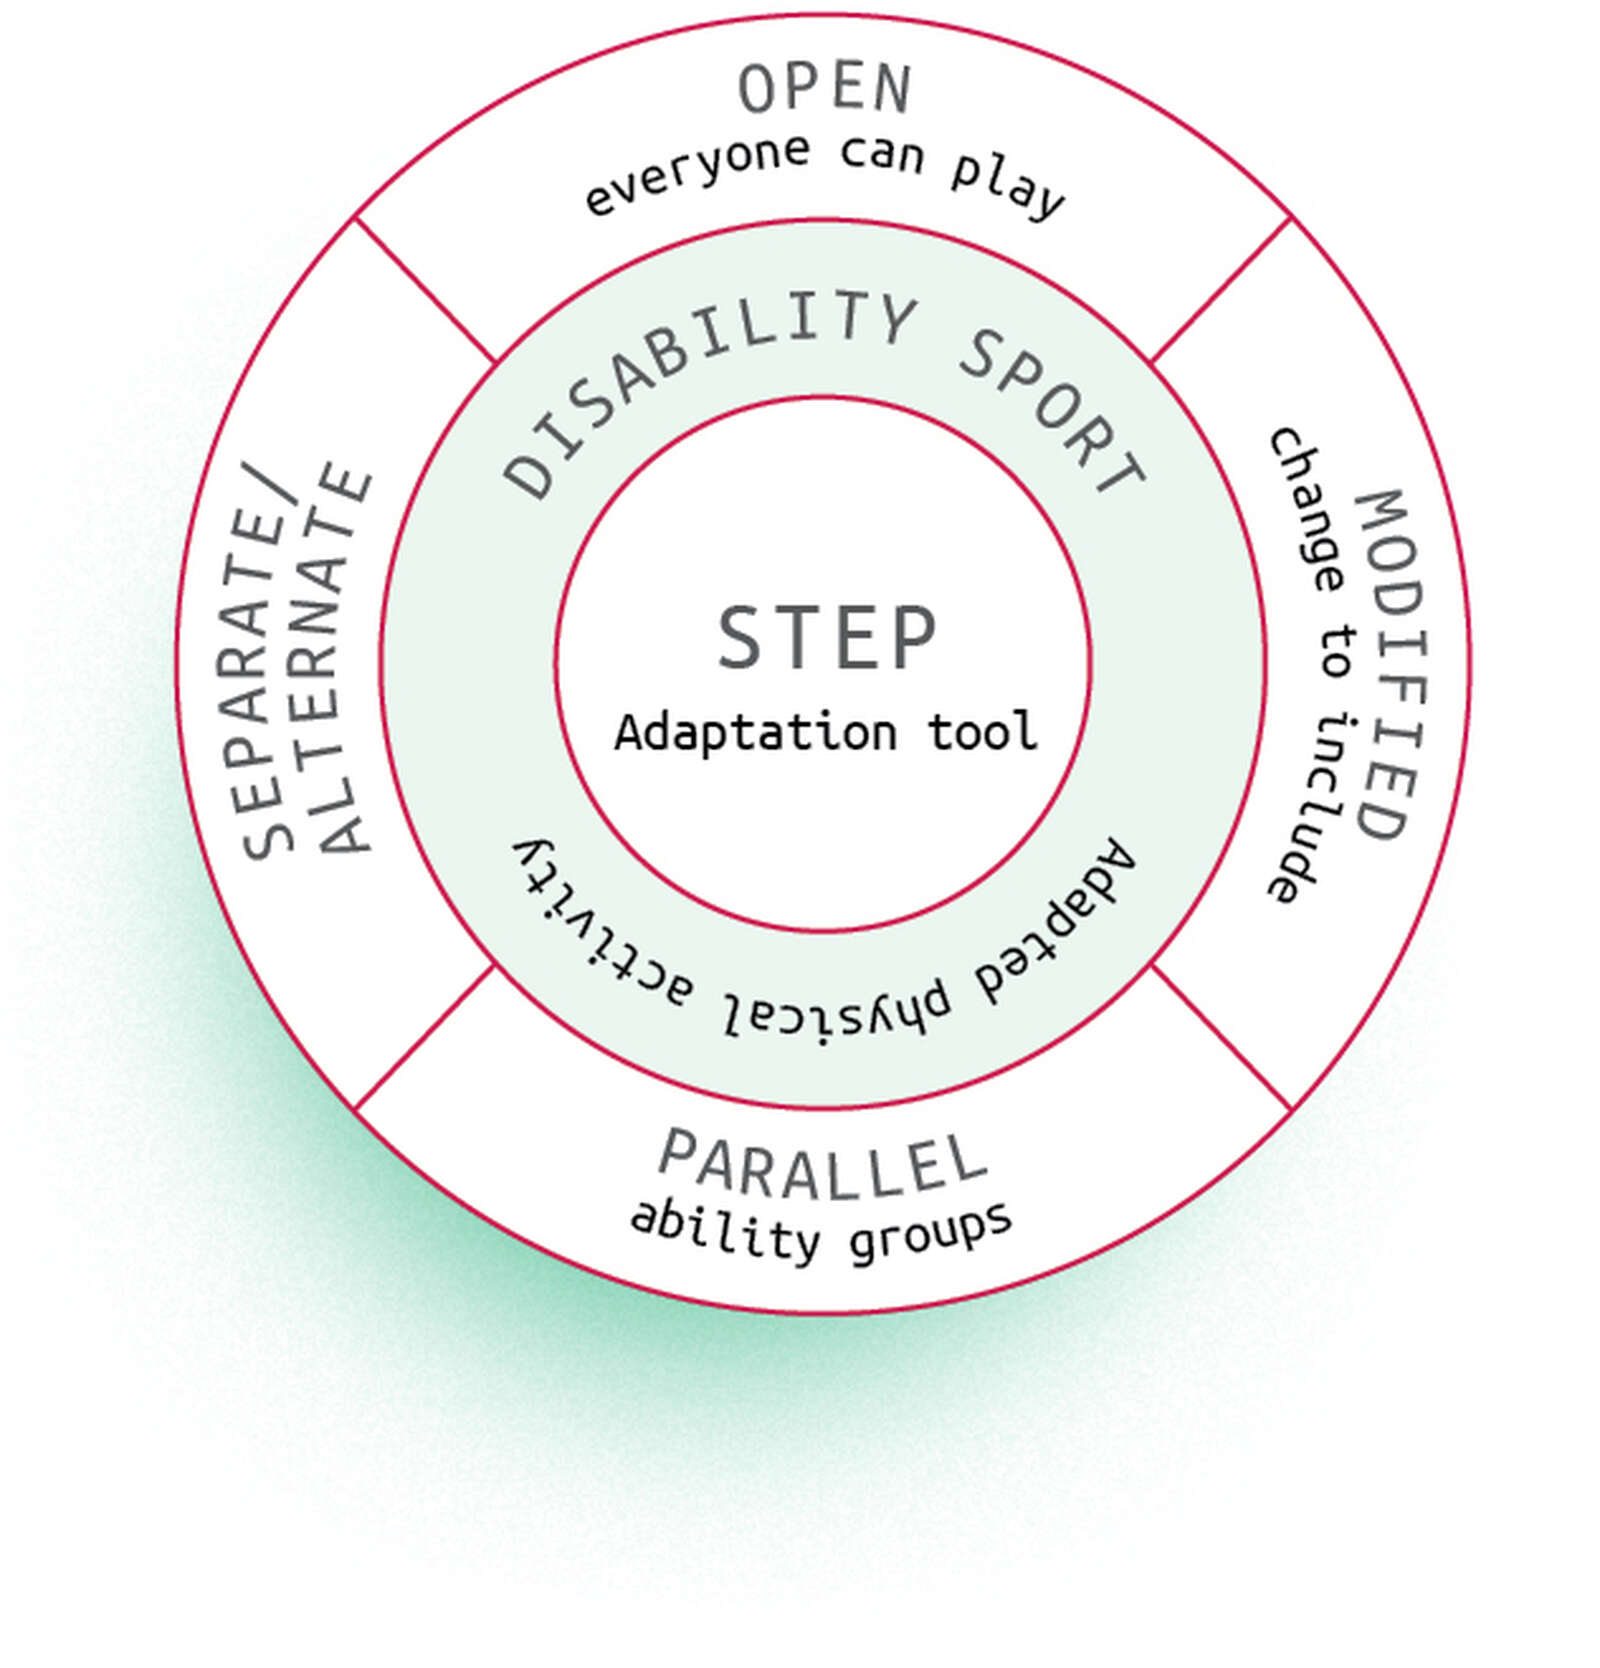 Figure 4: The Inclusion Spectrum incorporating STEP (Black & Stevenson, 2012) adapted from England Athletics: https://www.englandathletics.org/shared/get-file.ashx?itemtype=document&id=10176